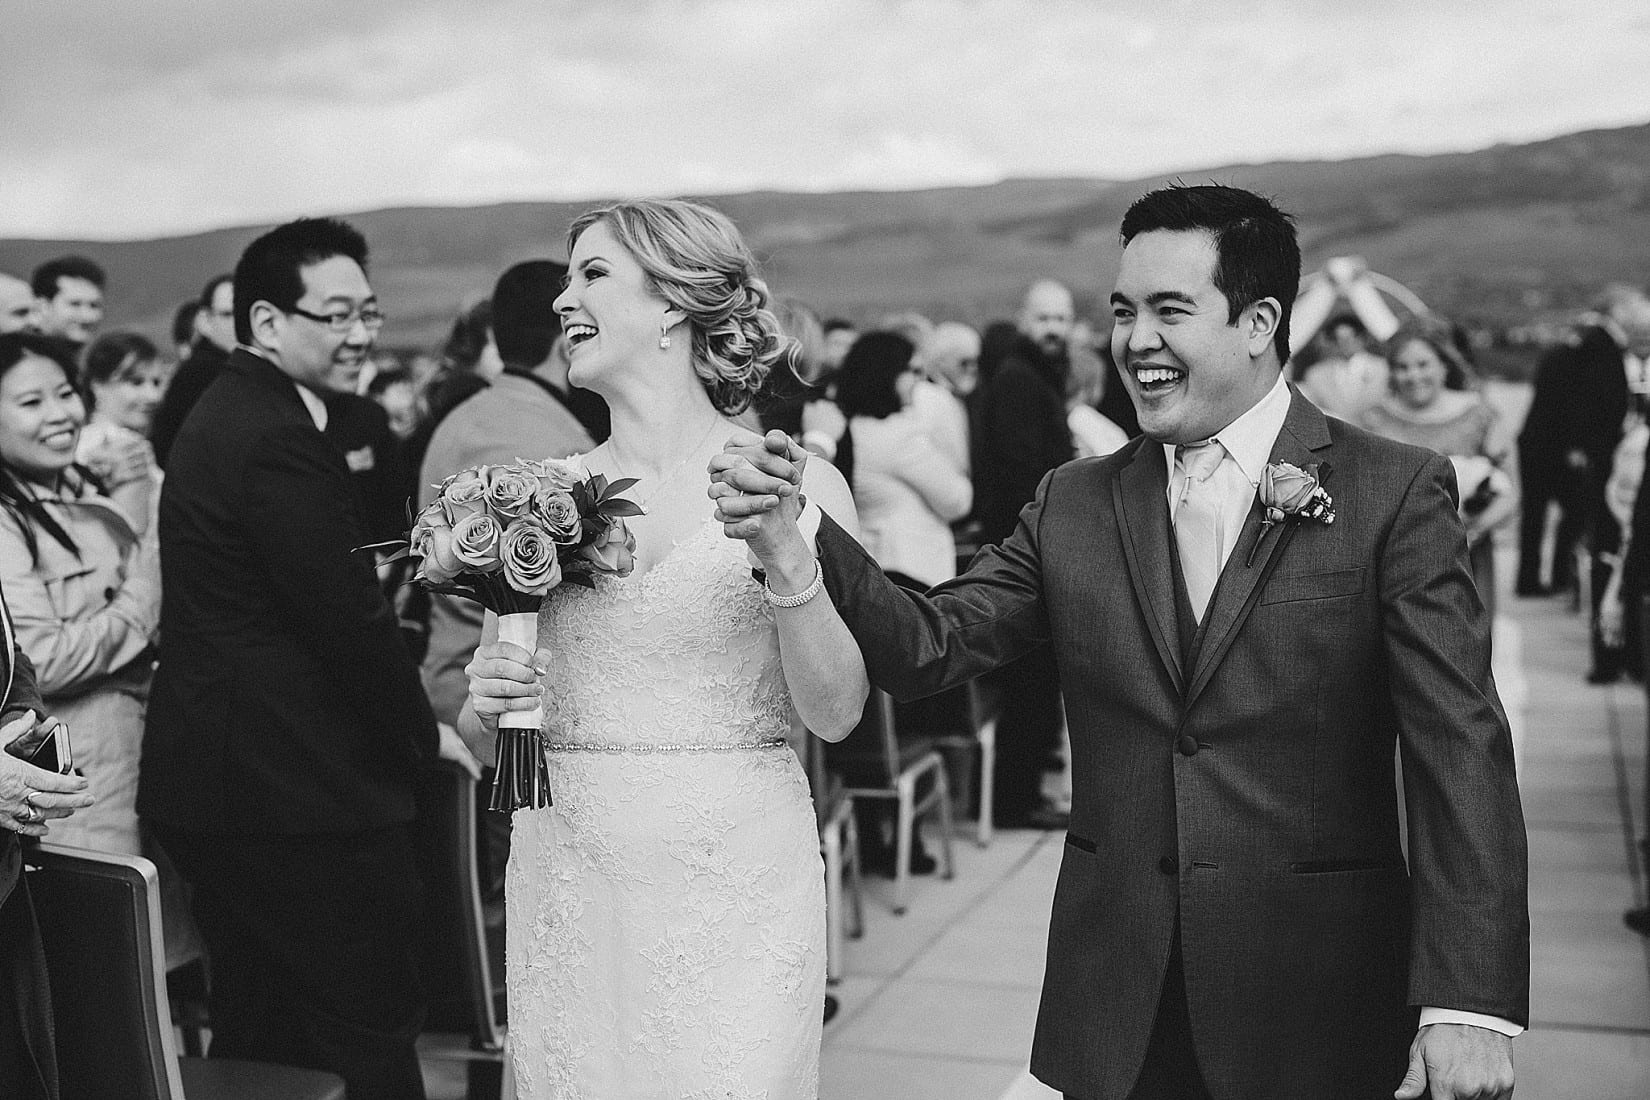 Looking for Kelowna's Best Wedding Photographer? Barnett Photography are married couple photographing weddings here in the beautiful Okanagan! Winners of the Kelowna Now Best of Kelowna 2017 and 2016!